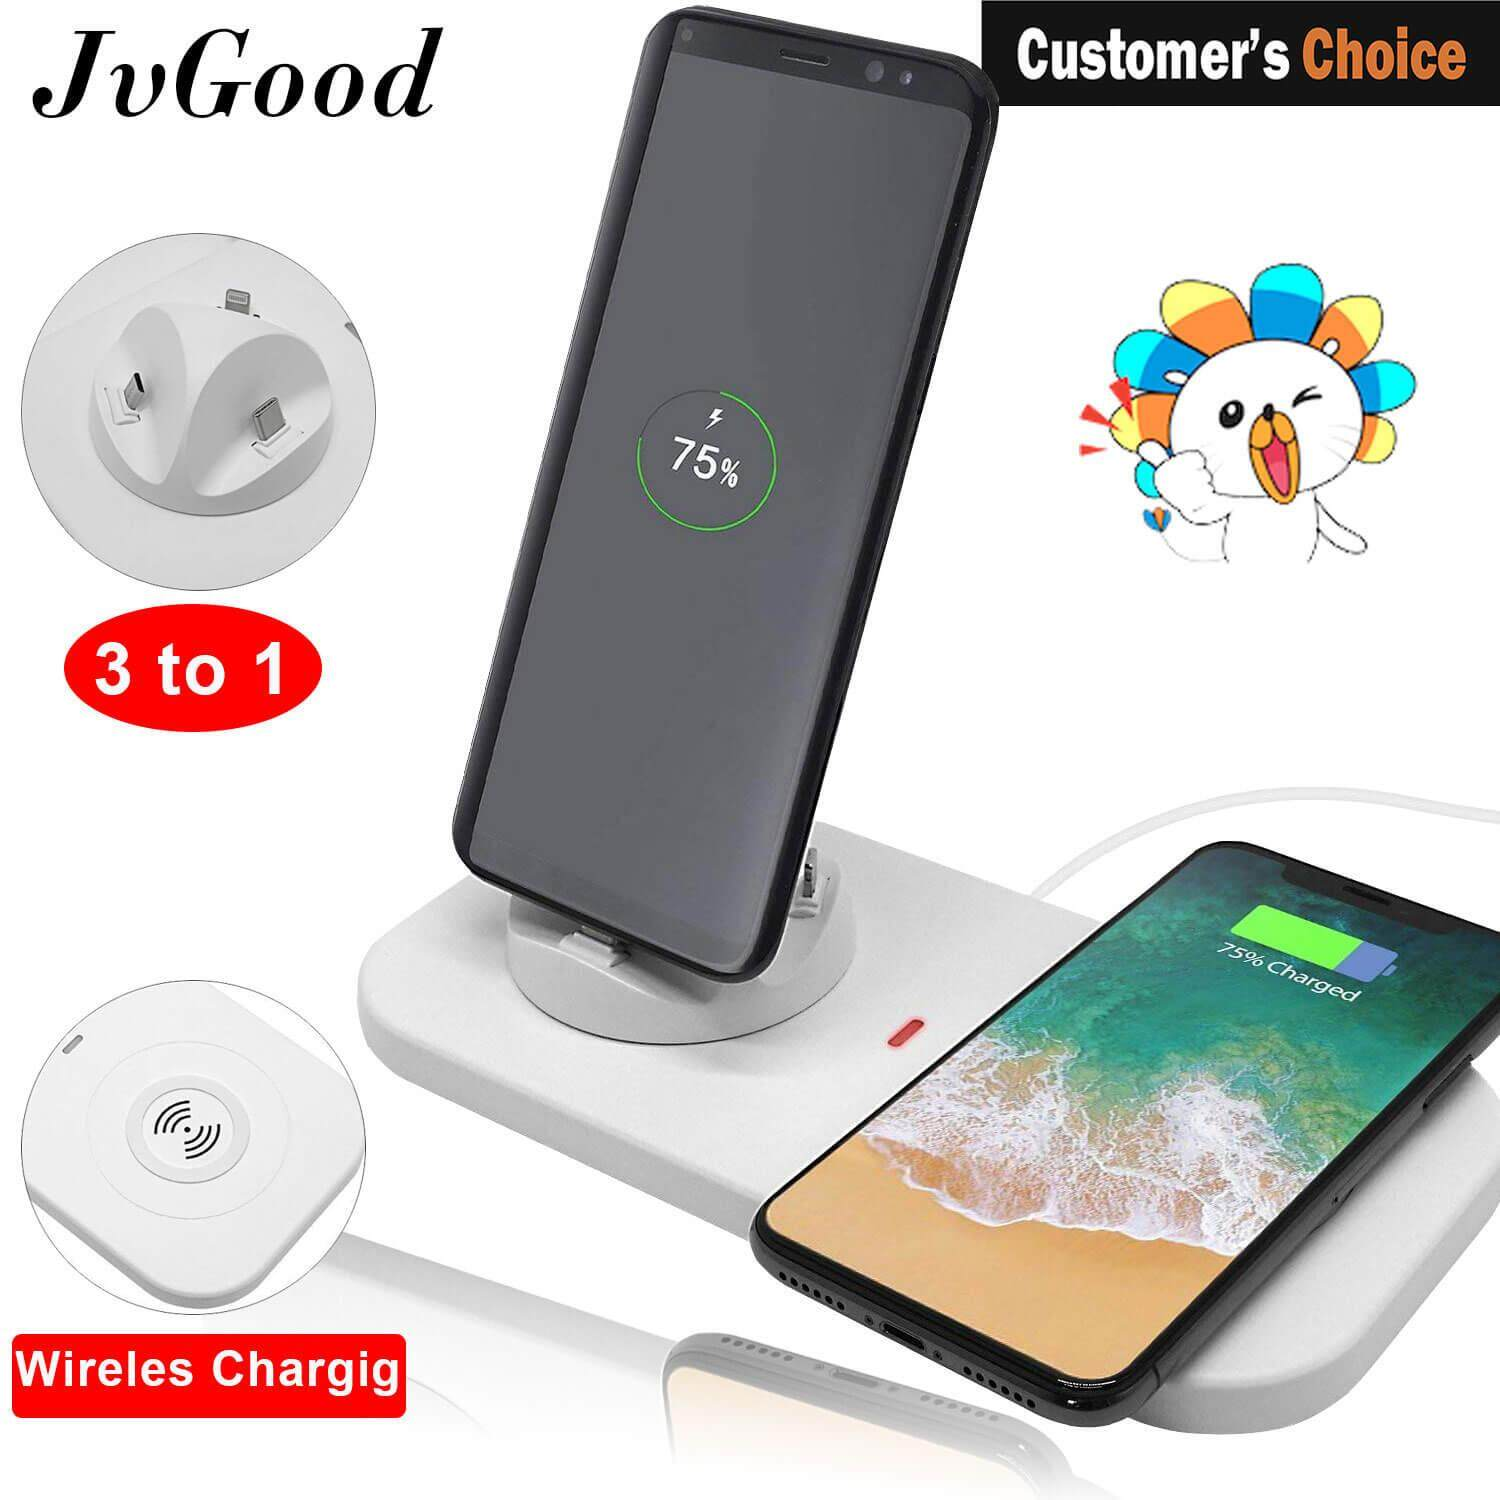 JvGood Pengisian Station Cellphone Charging Station Dock Stand 3 in 1 Multiple Phone Charger Phone Charging